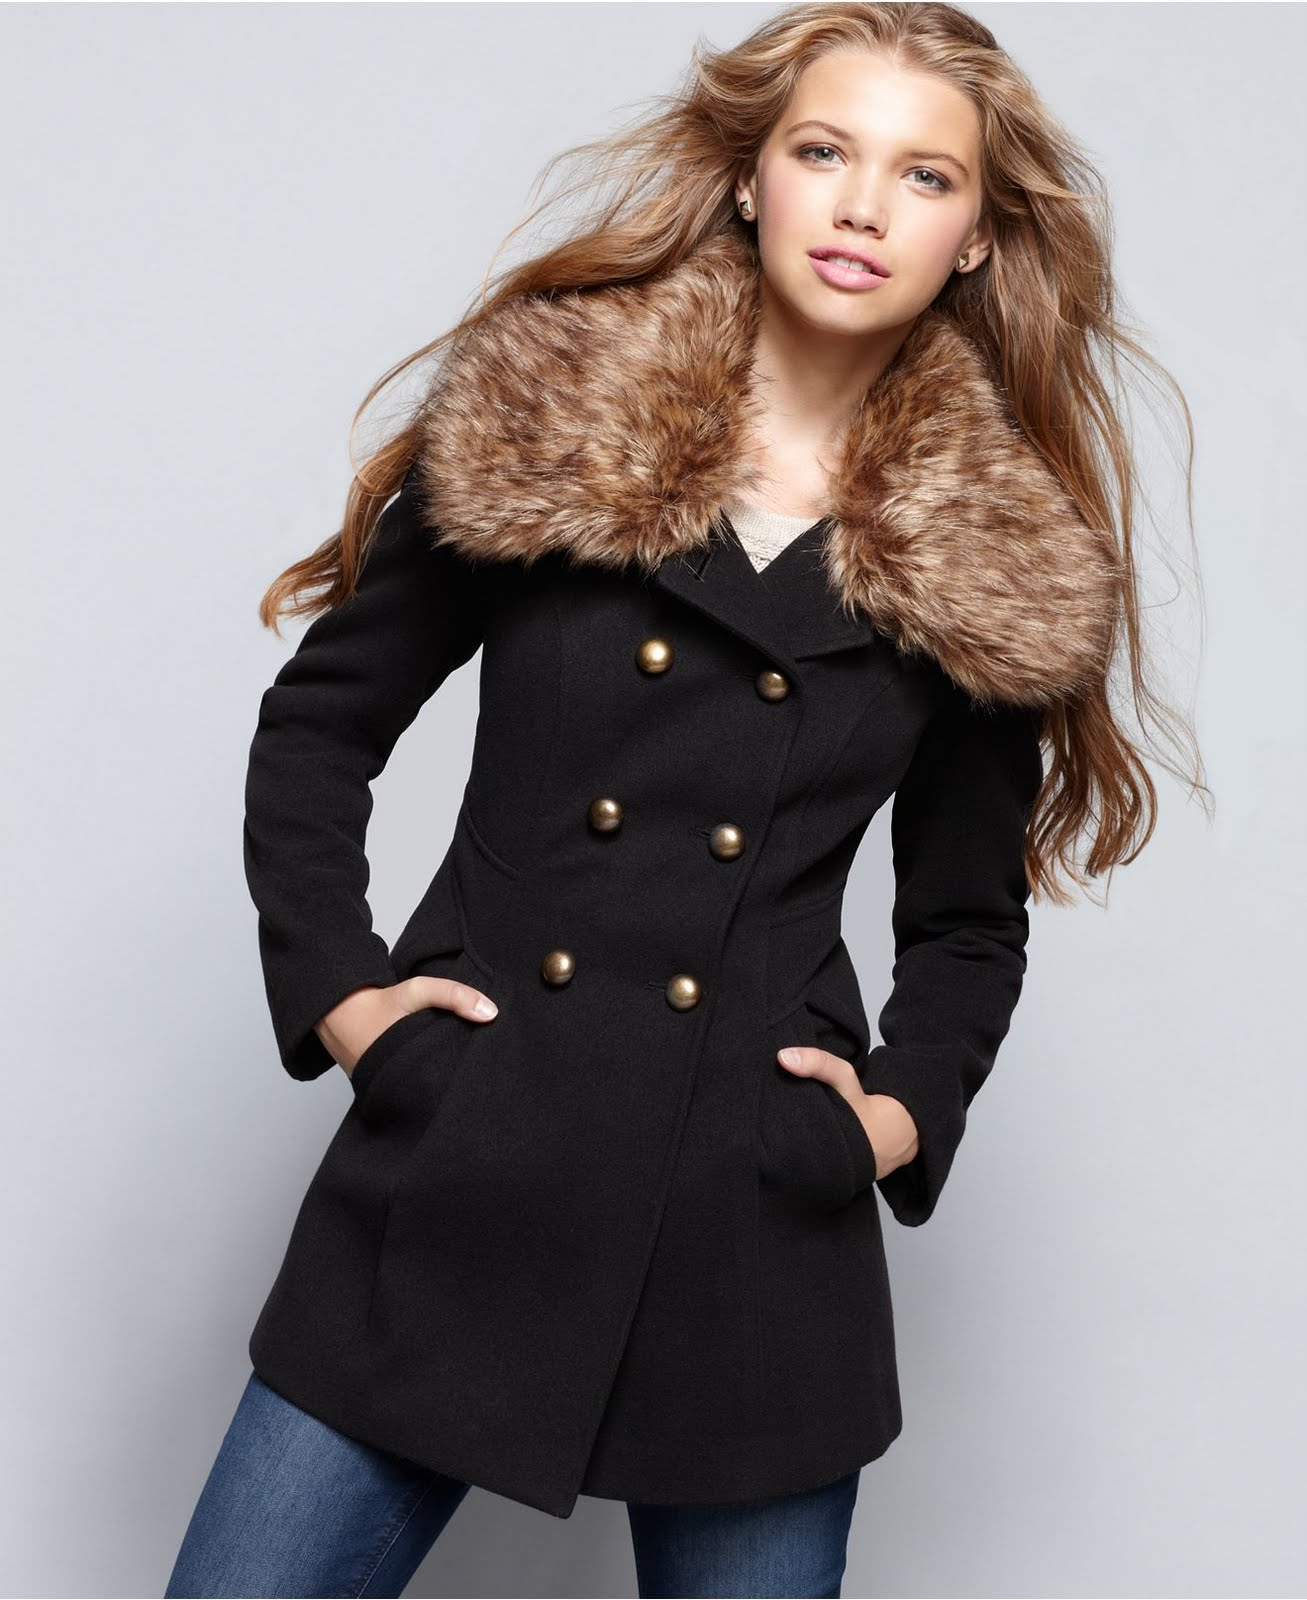 Target / Clothing / fur collar jacket coat (29)  filter results. Category. Clothing. Accessories. Type. faux fur jackets (15) faux fur jackets. fashion jackets (6) fashion jackets. capes (2) capes. faux fur vests (2) faux fur vests. moto jackets (1) moto jackets. parkas (1) parkas. pea coats (1) pea coats.